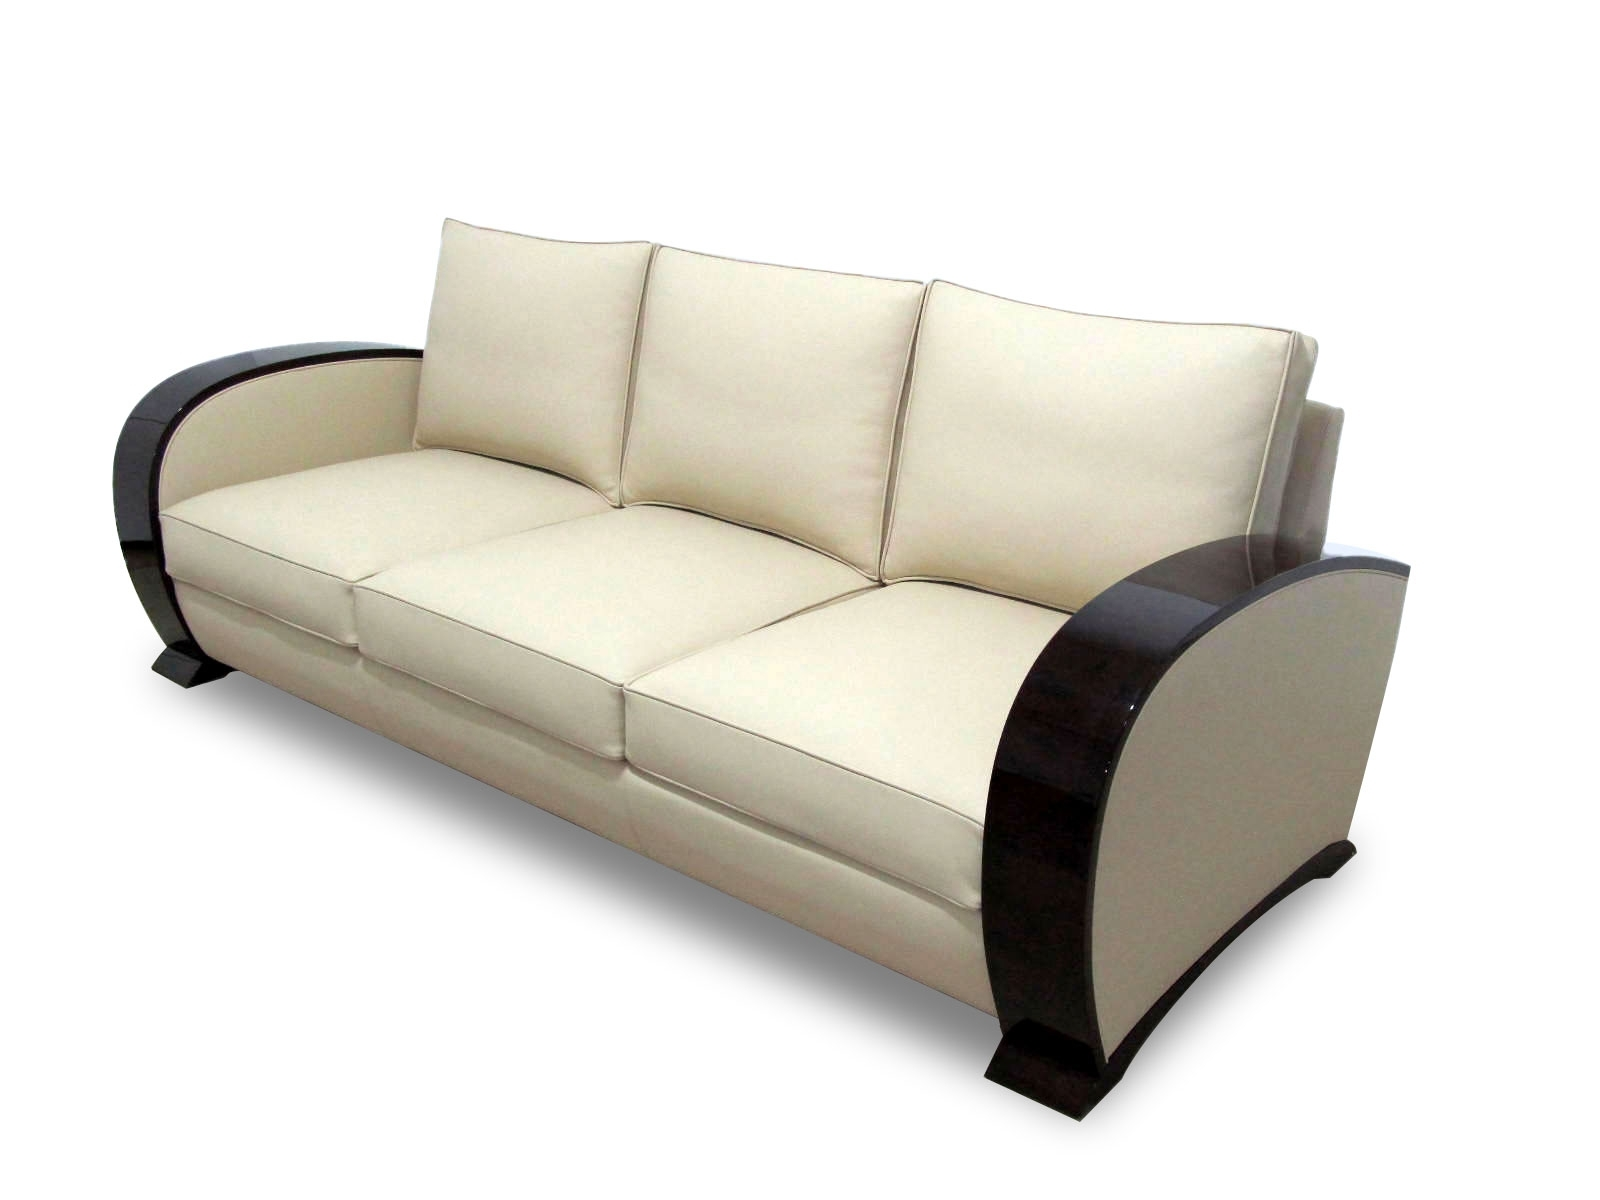 Art Deco Furniture – Hifigeny Custom Furniture With Art Deco Sofas (Image 2 of 10)